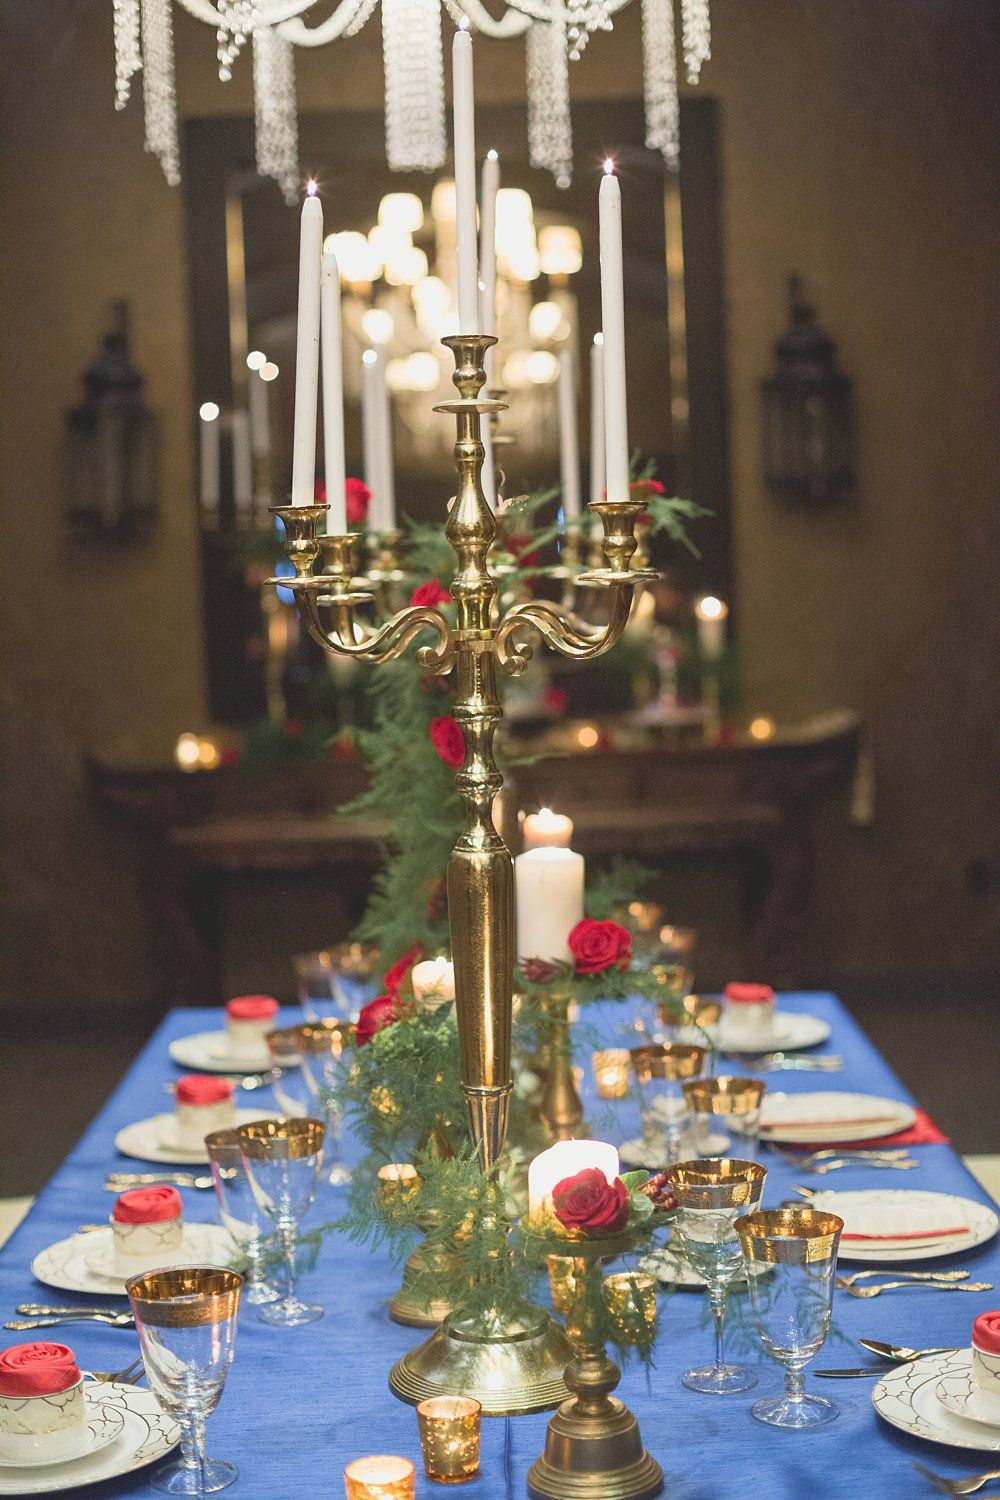 Beauty And The Beast Table Decor A Princess Inspired Blog Winter Red And Gold Christmas Decor Gold Christmas Decorations Wedding Beauty And The Beast